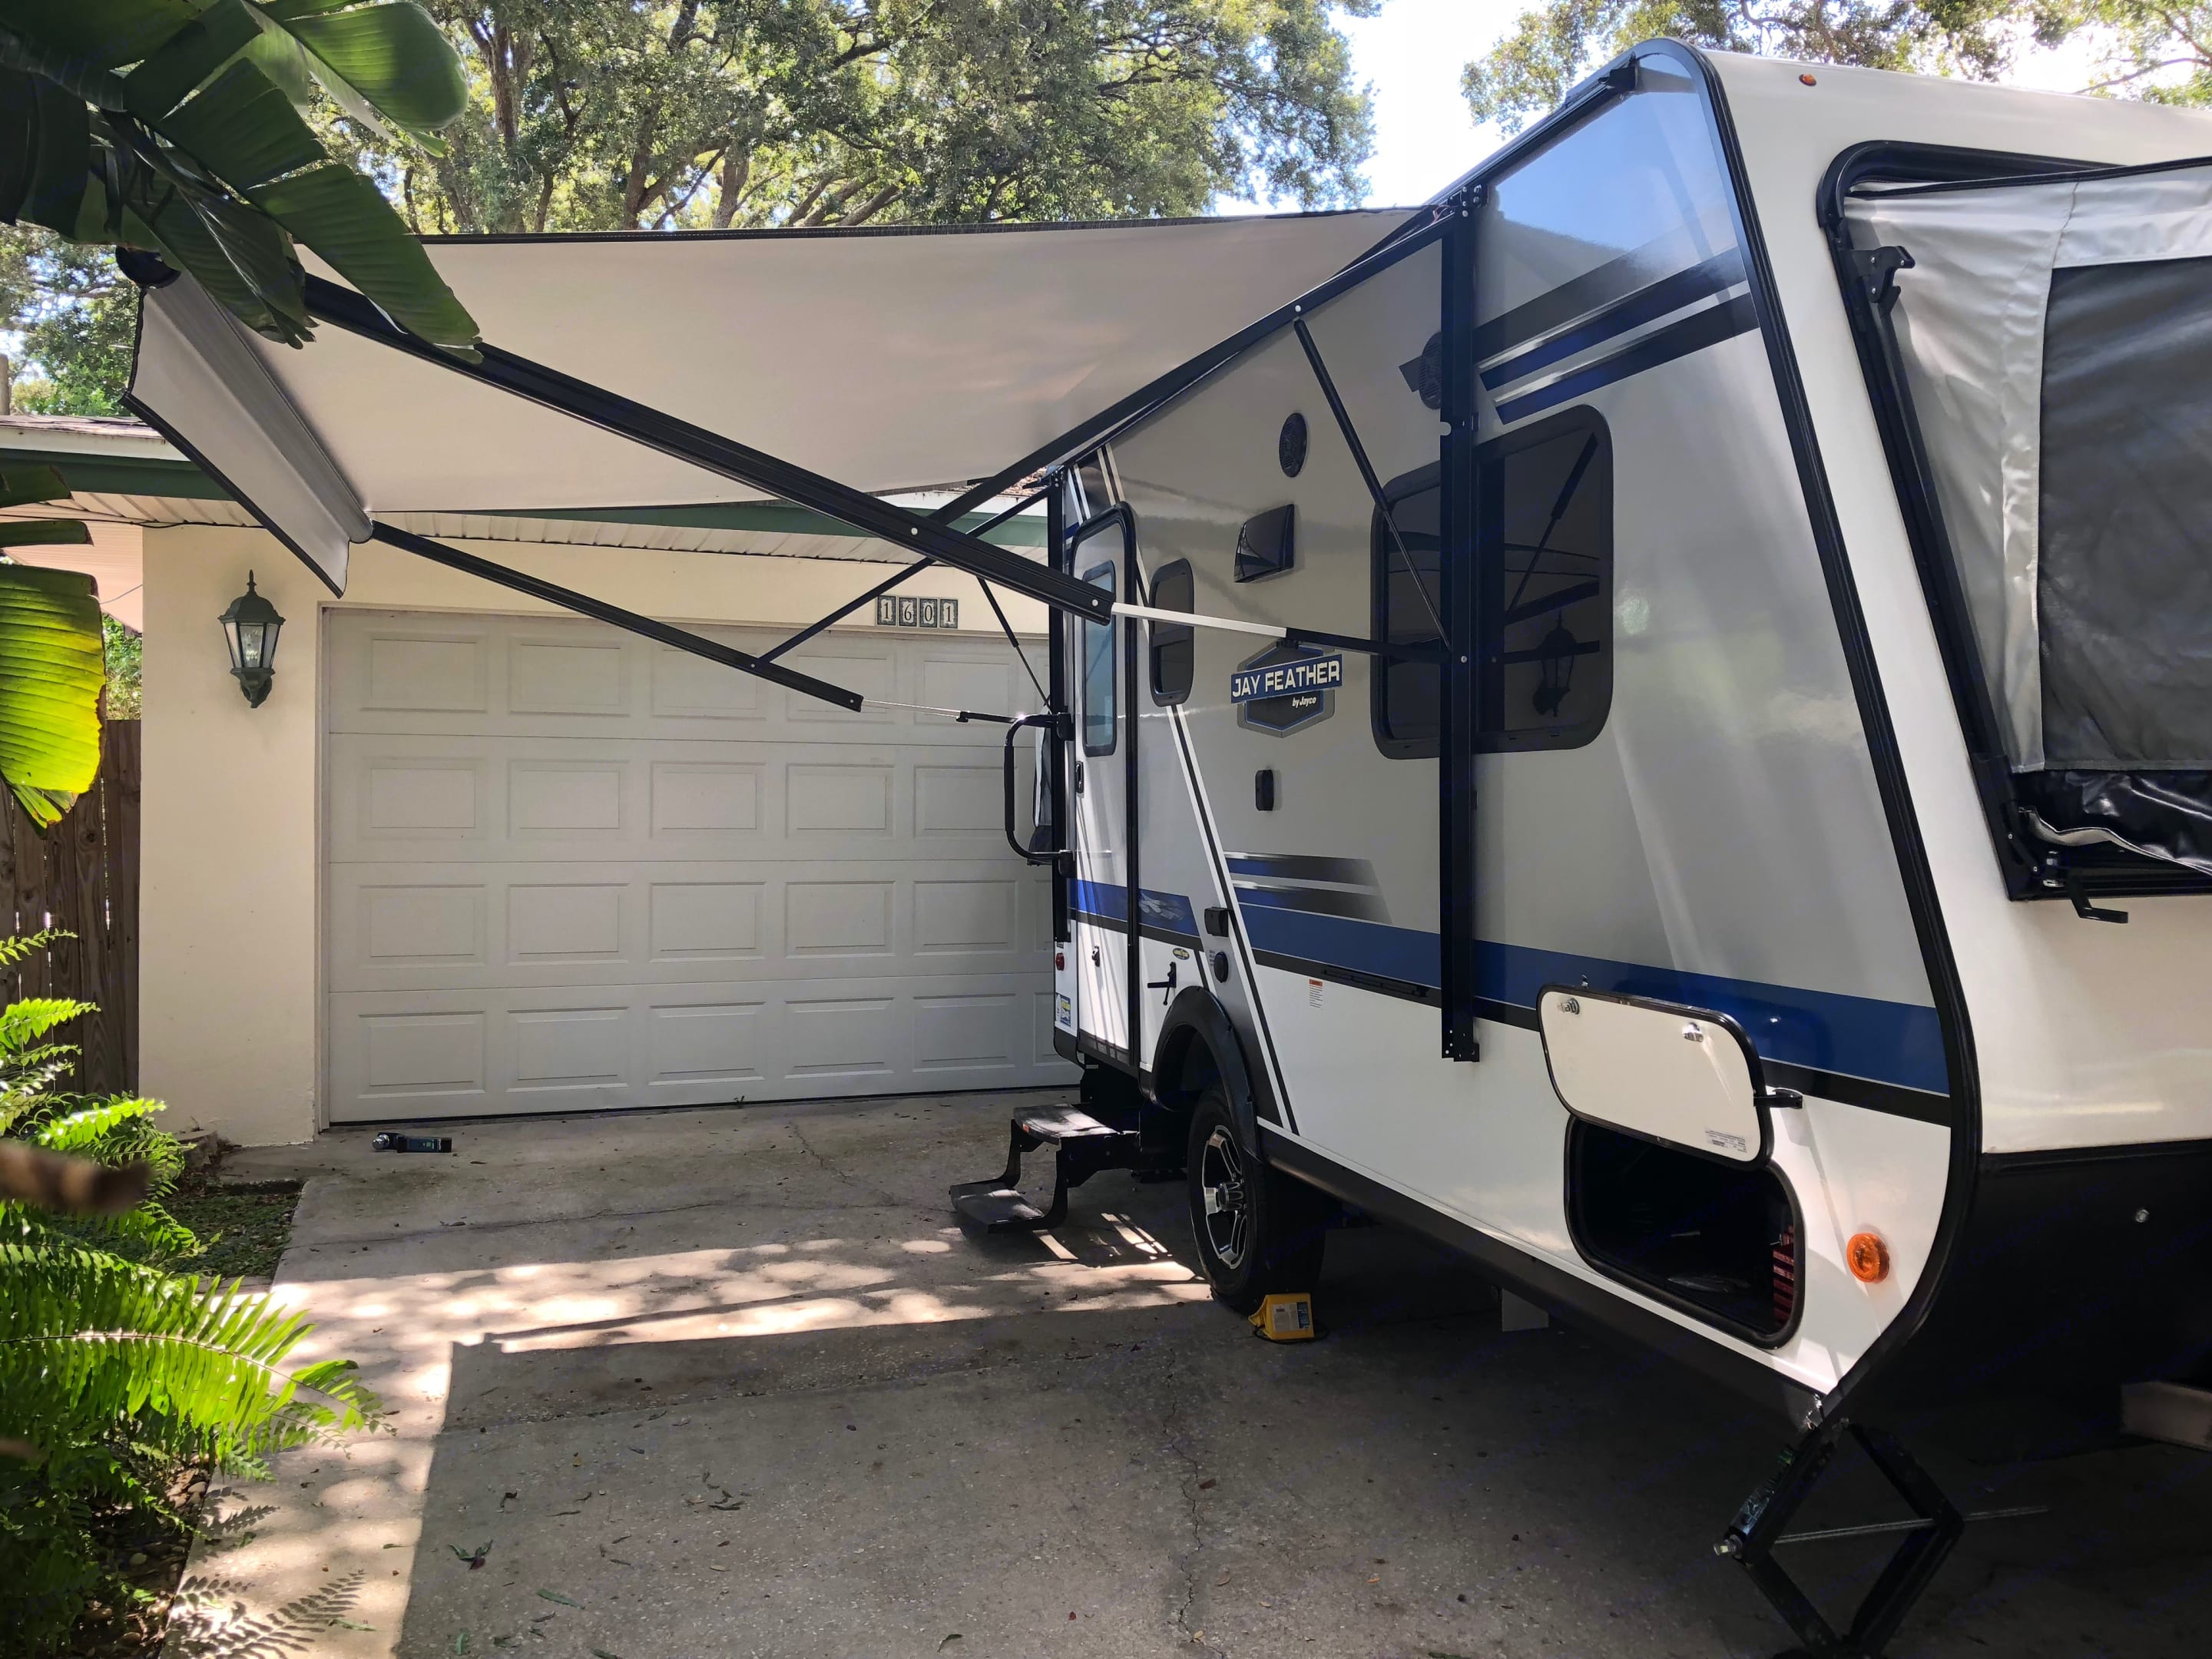 10 Ft Electric Awning with LED Lights. Jayco Jay Feather 2019